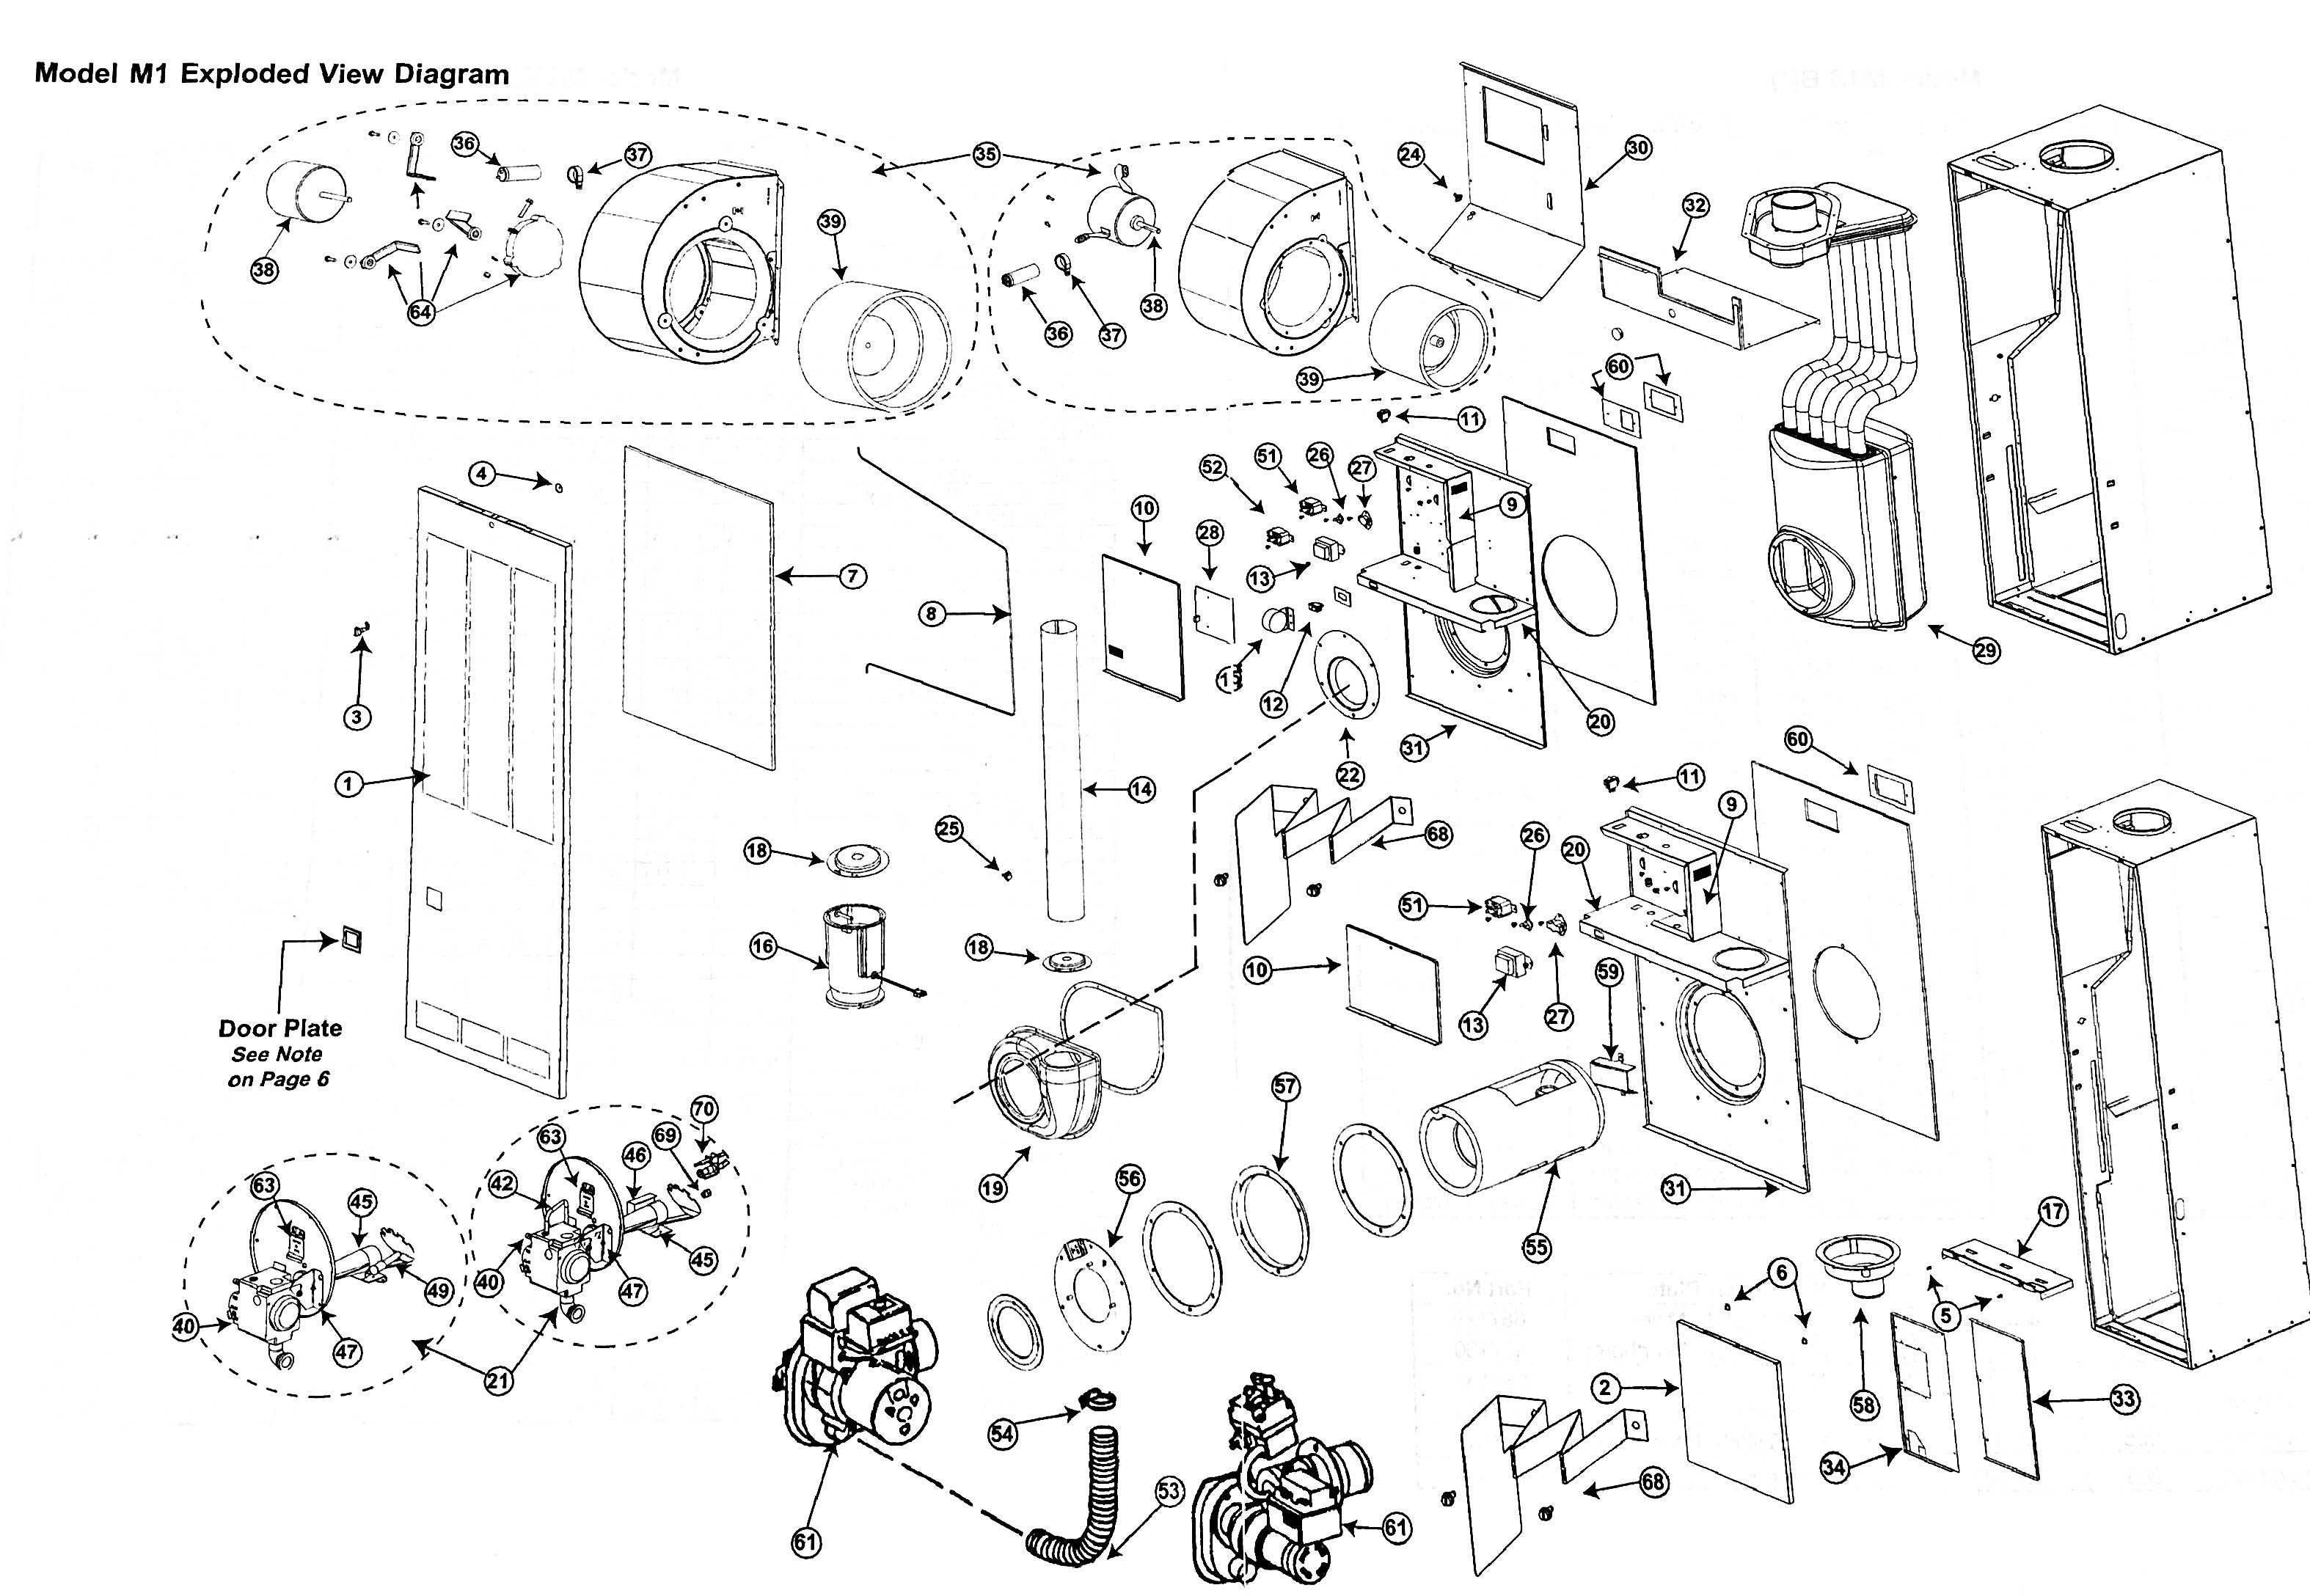 M1gd070 Nordyne Gas Furnace Parts Tagged Analog Hvacpartstore Wiring Diagram Click Here To View A Listing For The Which Includes Partial Diagrams That We Currently Have Available